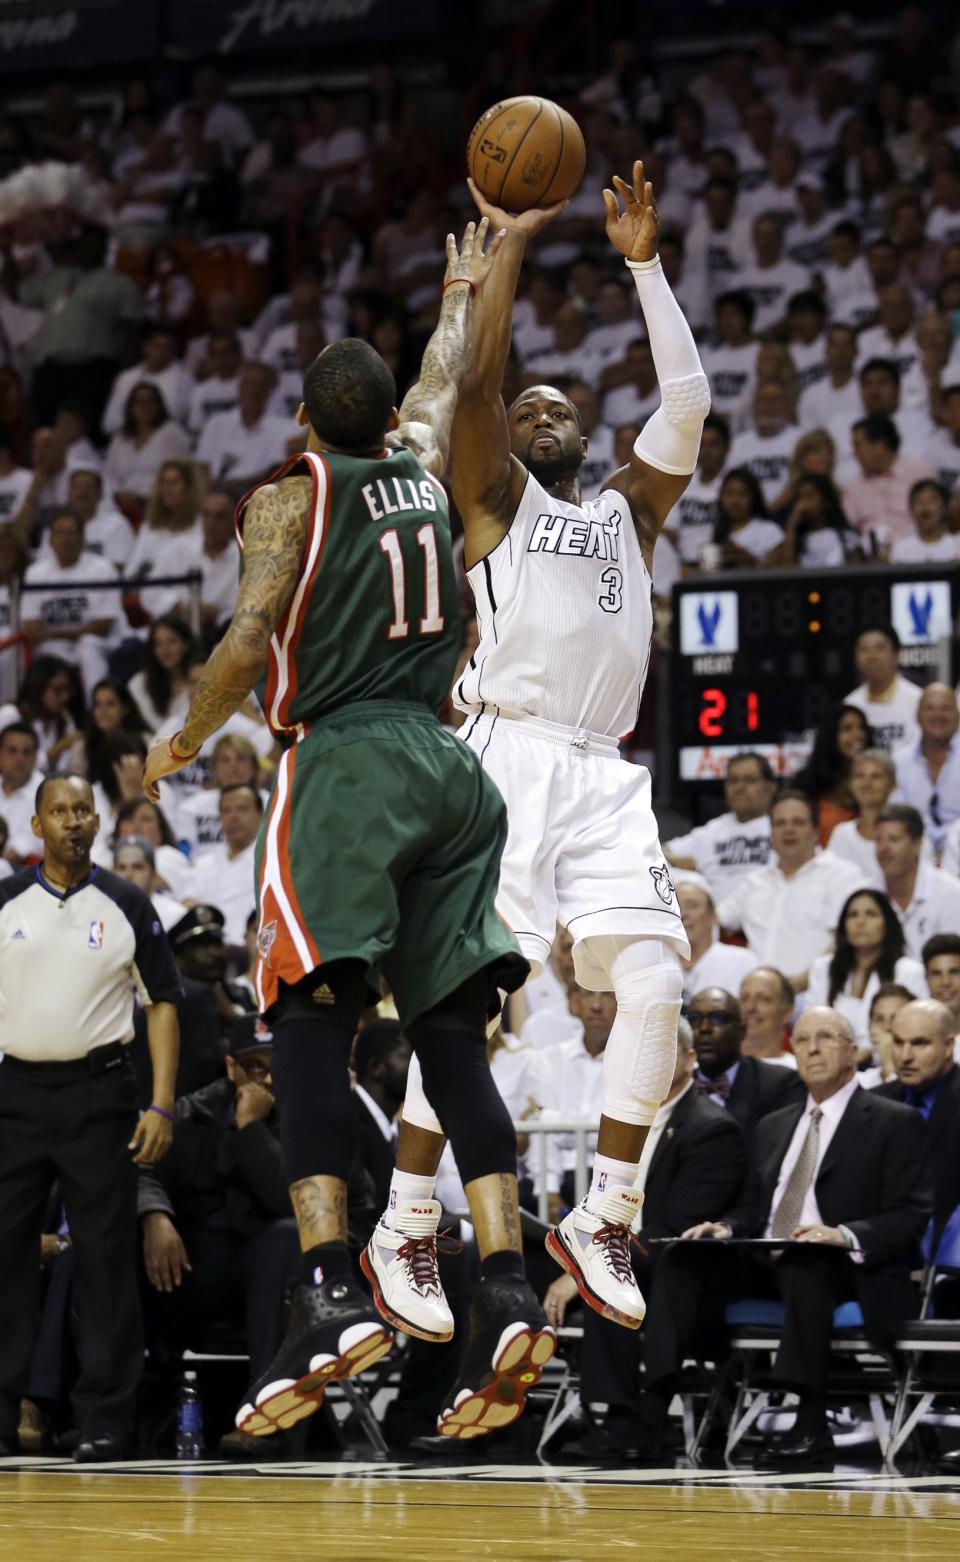 Miami Heat's Dwyane Wade (3) shoots as Milwaukee Bucks' Monta Ellis (11) defends during the first half of Game 1 of their first-round NBA basketball playoff series in Miami, Sunday April 21, 2013. (AP Photo/Alan Diaz)